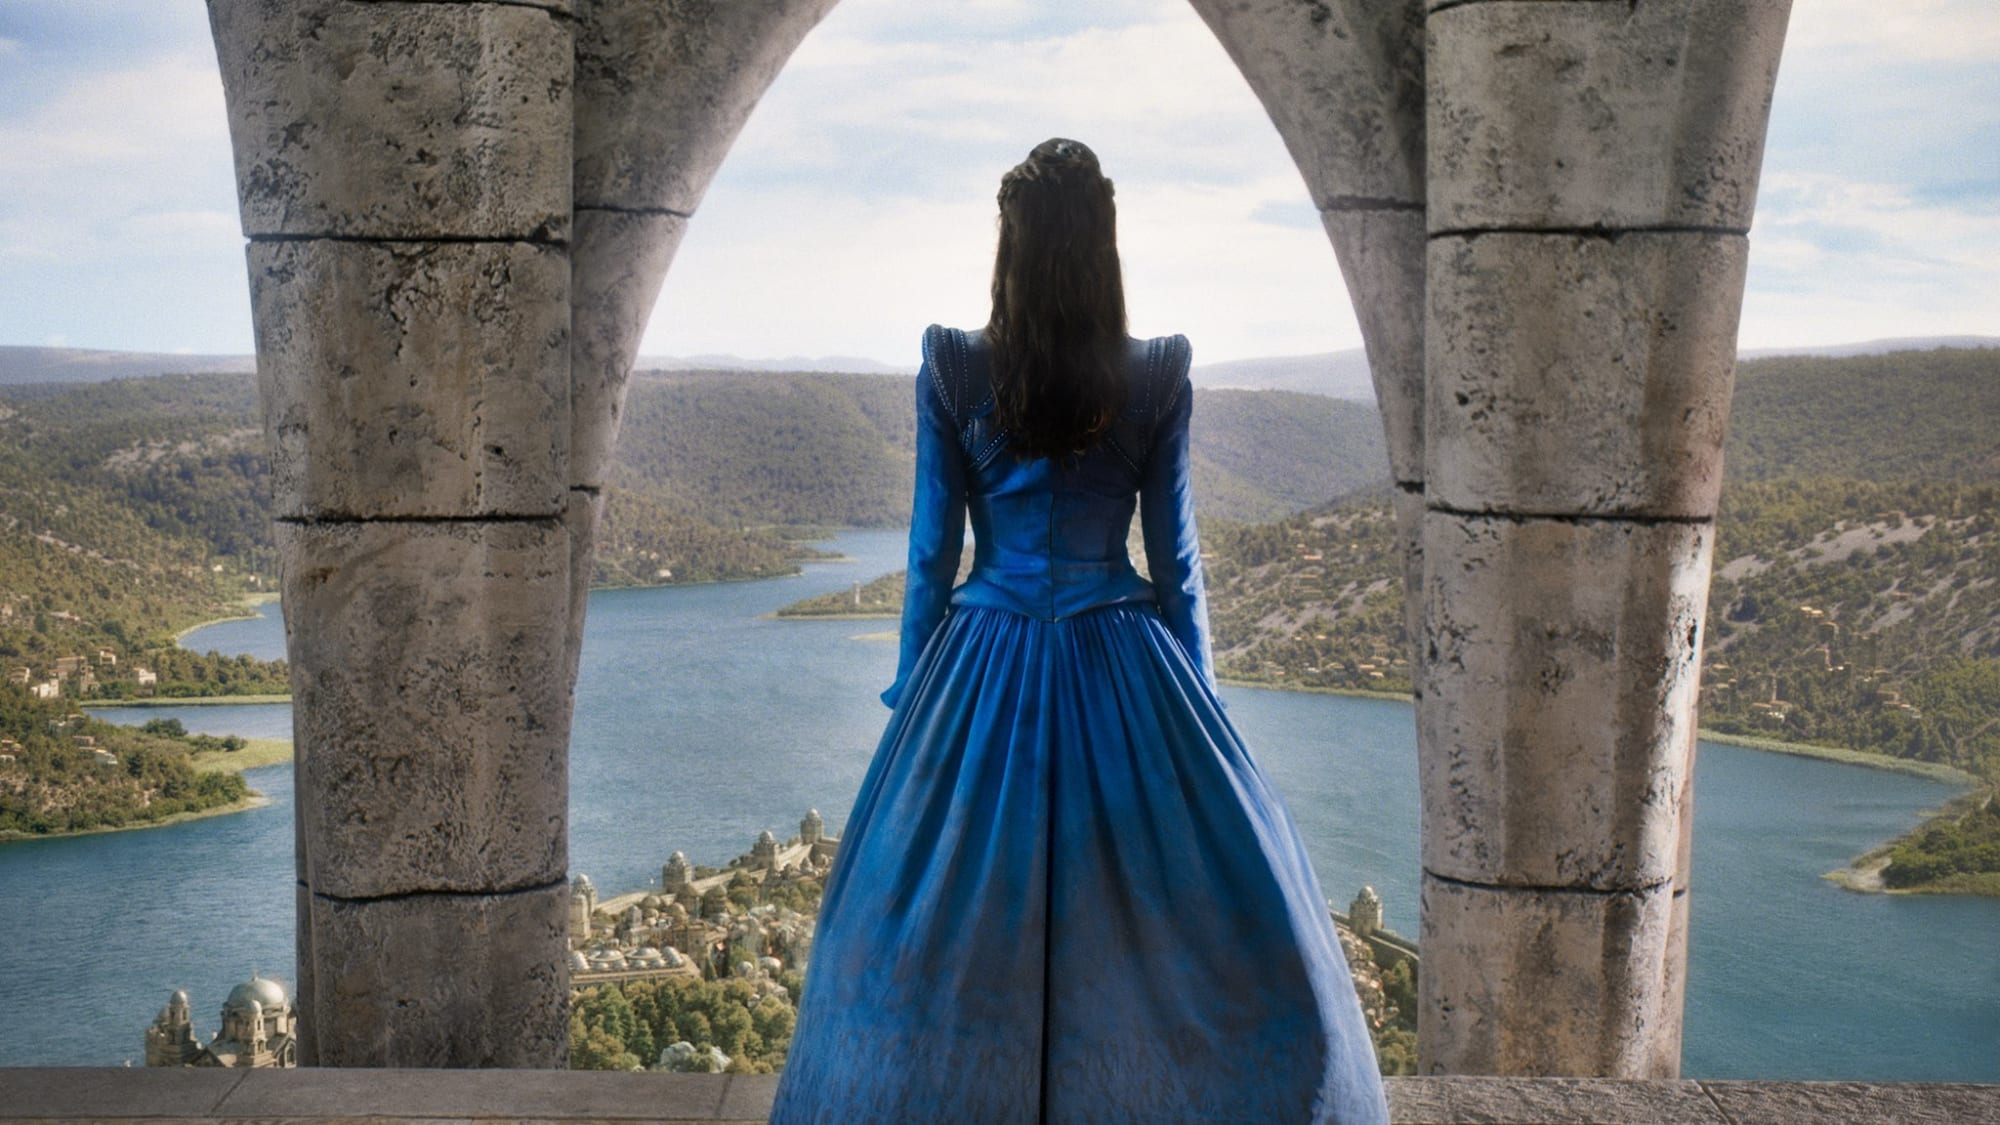 What will the first season of The Wheel of Time pull from Books 2 and 3?